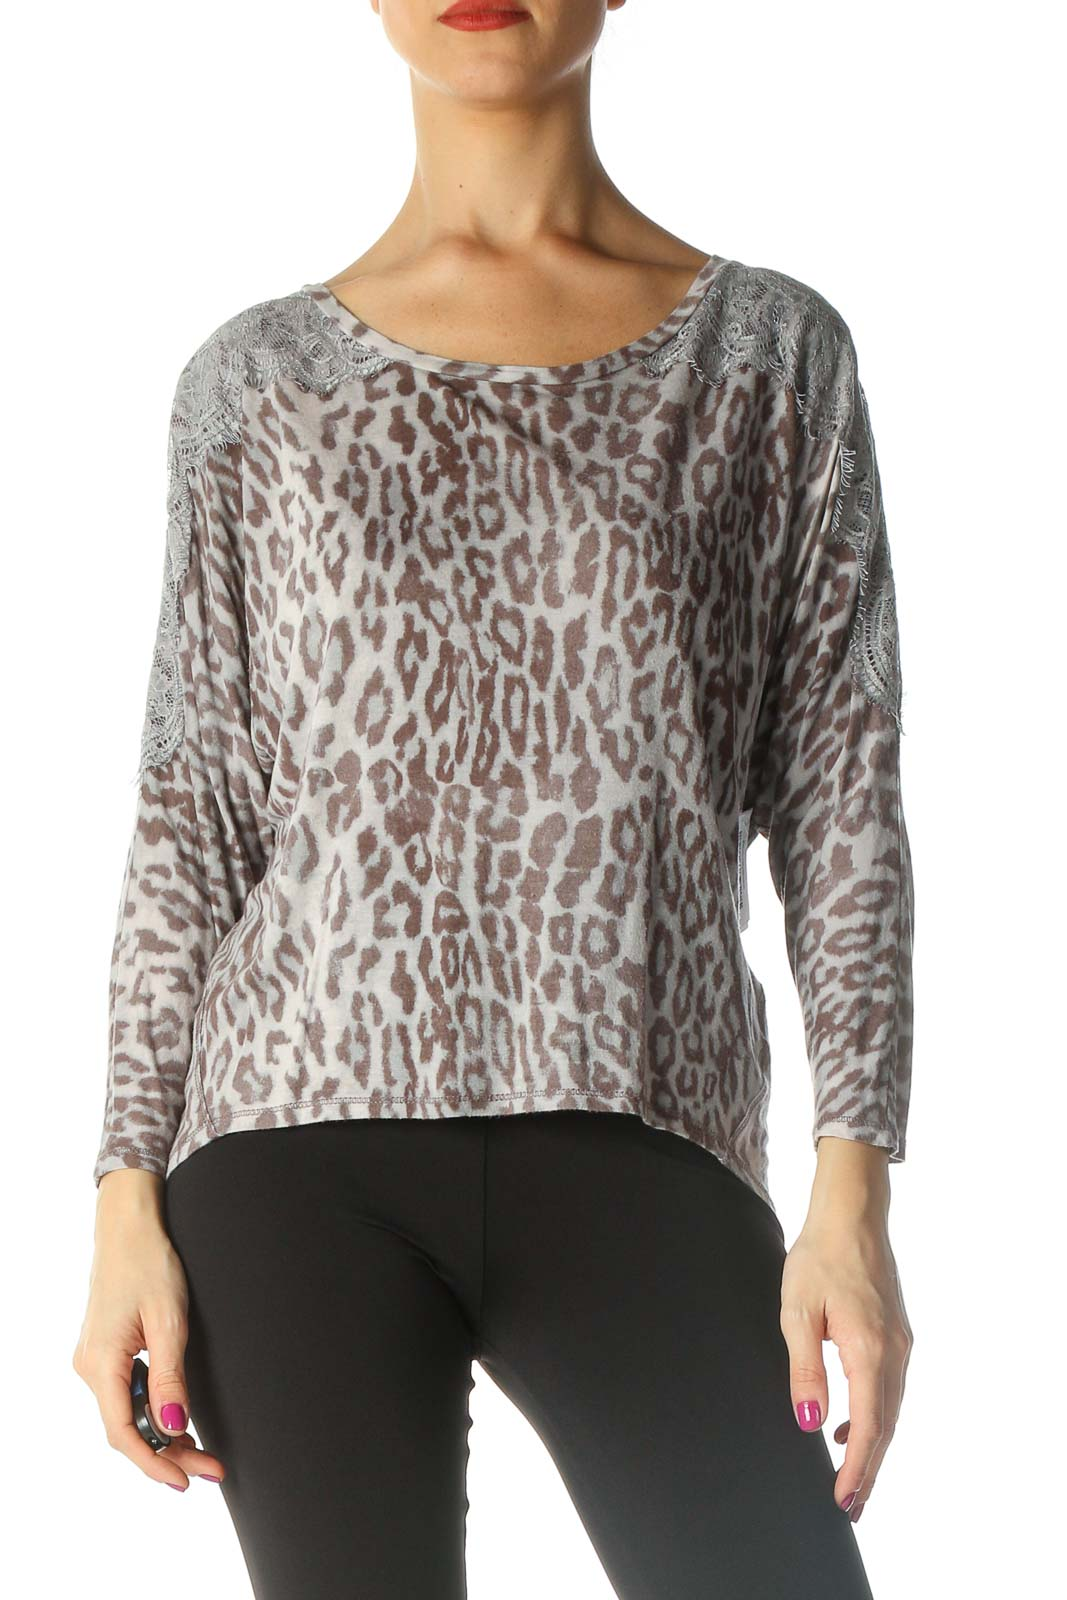 Beige Animal Print Casual Blouse Front